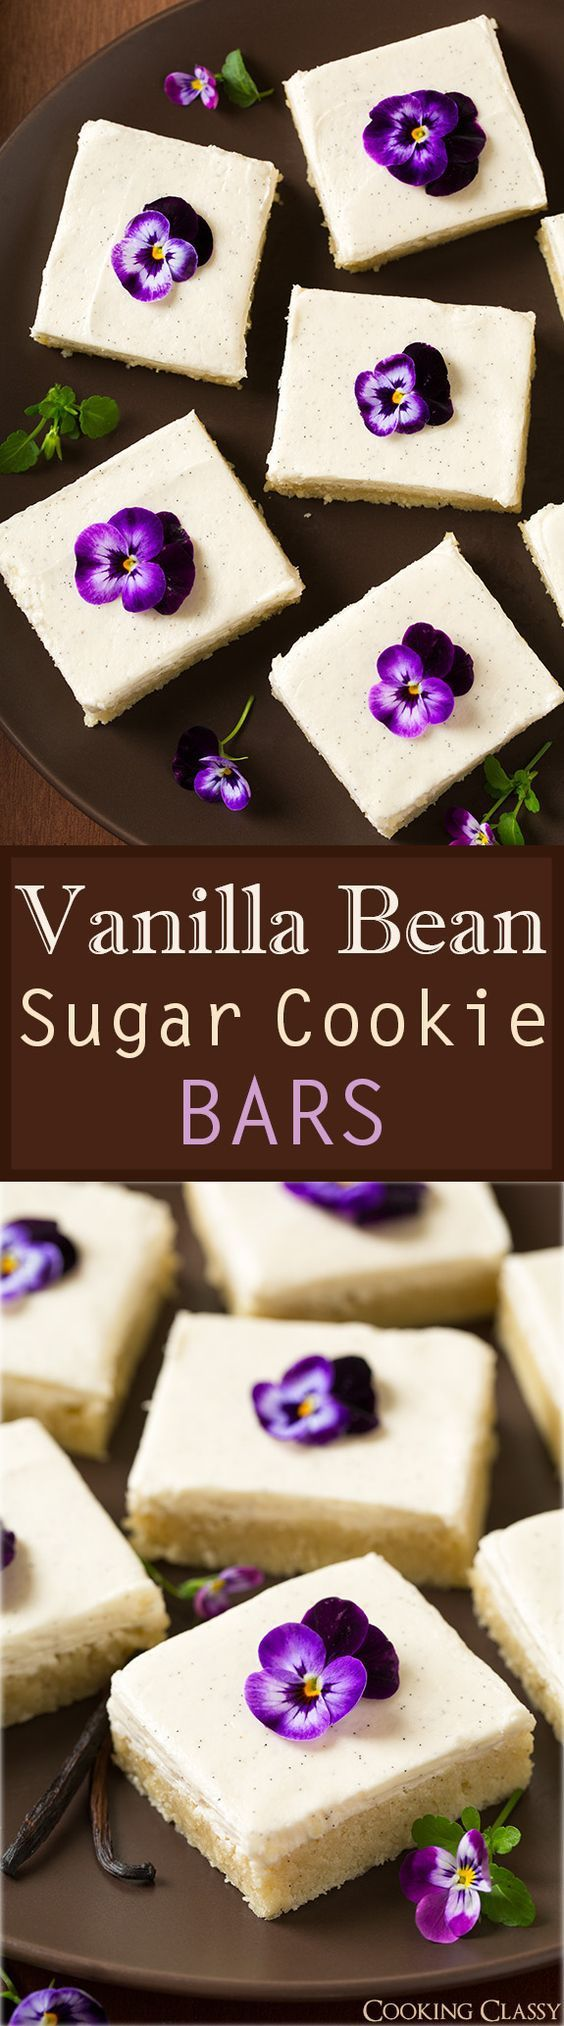 Vanilla Bean Sugar Cookie Dessert Bars with Vanilla Bean Frosting aka Very Vanilla Sugar Cookie Bars Recipe via Cooking Classy - these melt in your mouth! My new favorite sugar cookie bar!